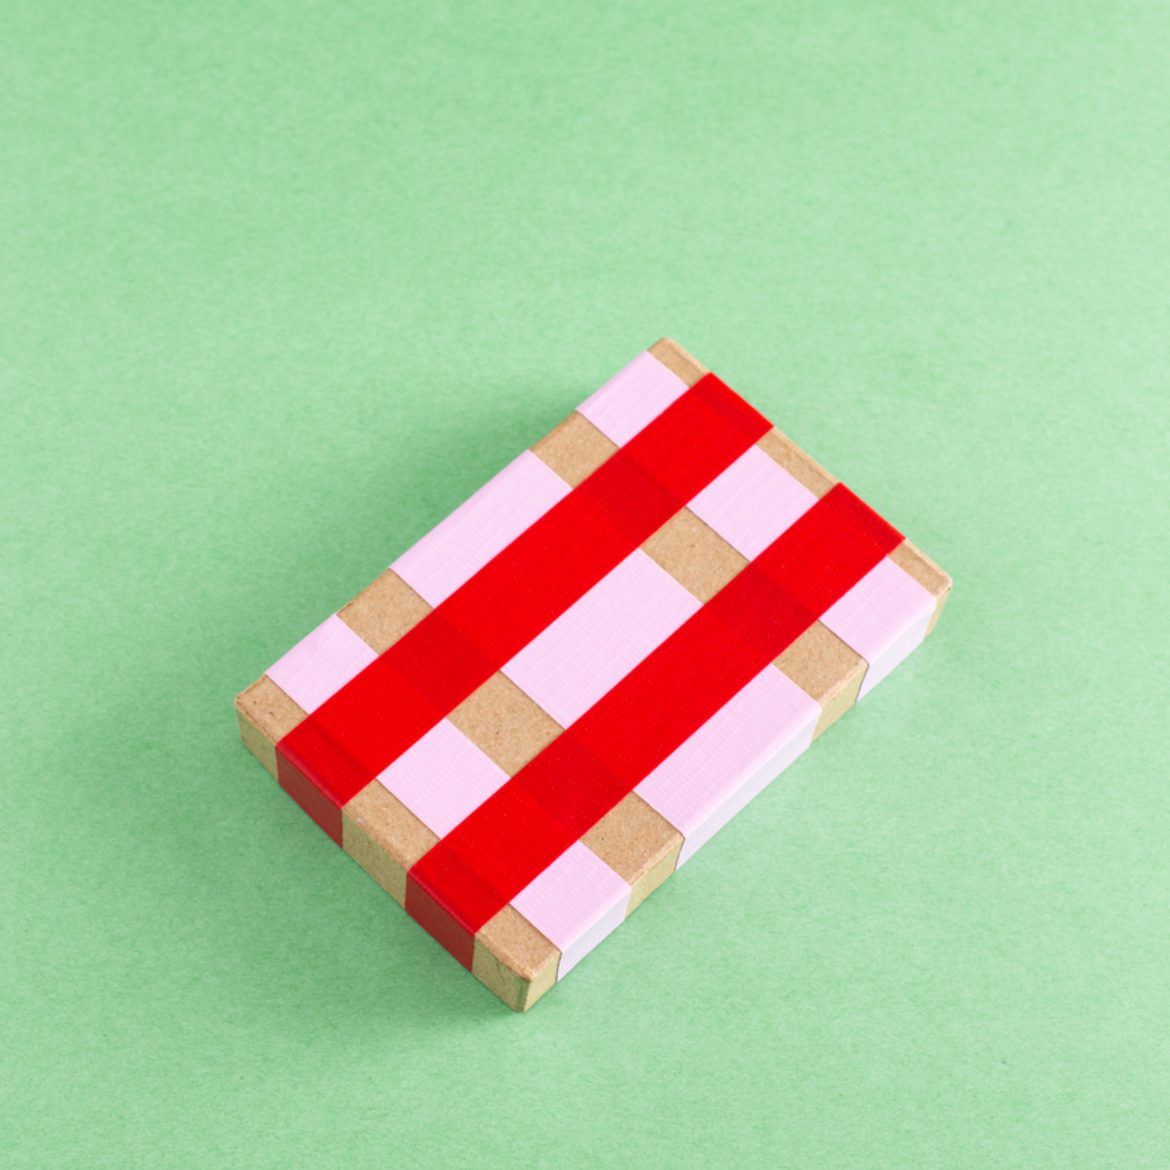 Strips of pink and red duct tape on a paper mache box